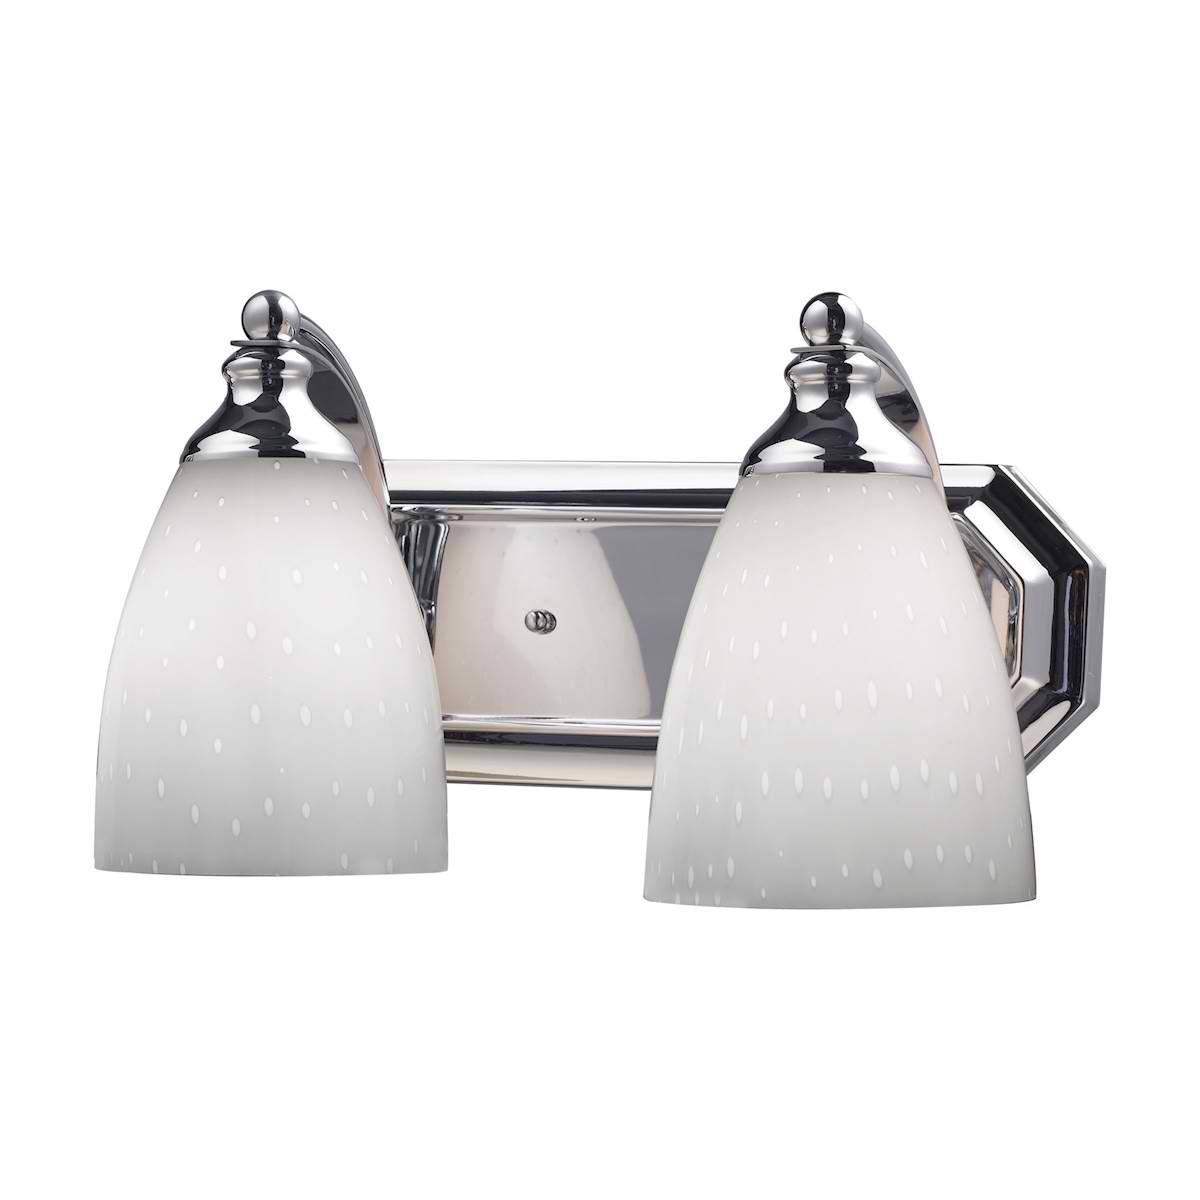 Vanity 2 Light Chrome with Simple White Glass